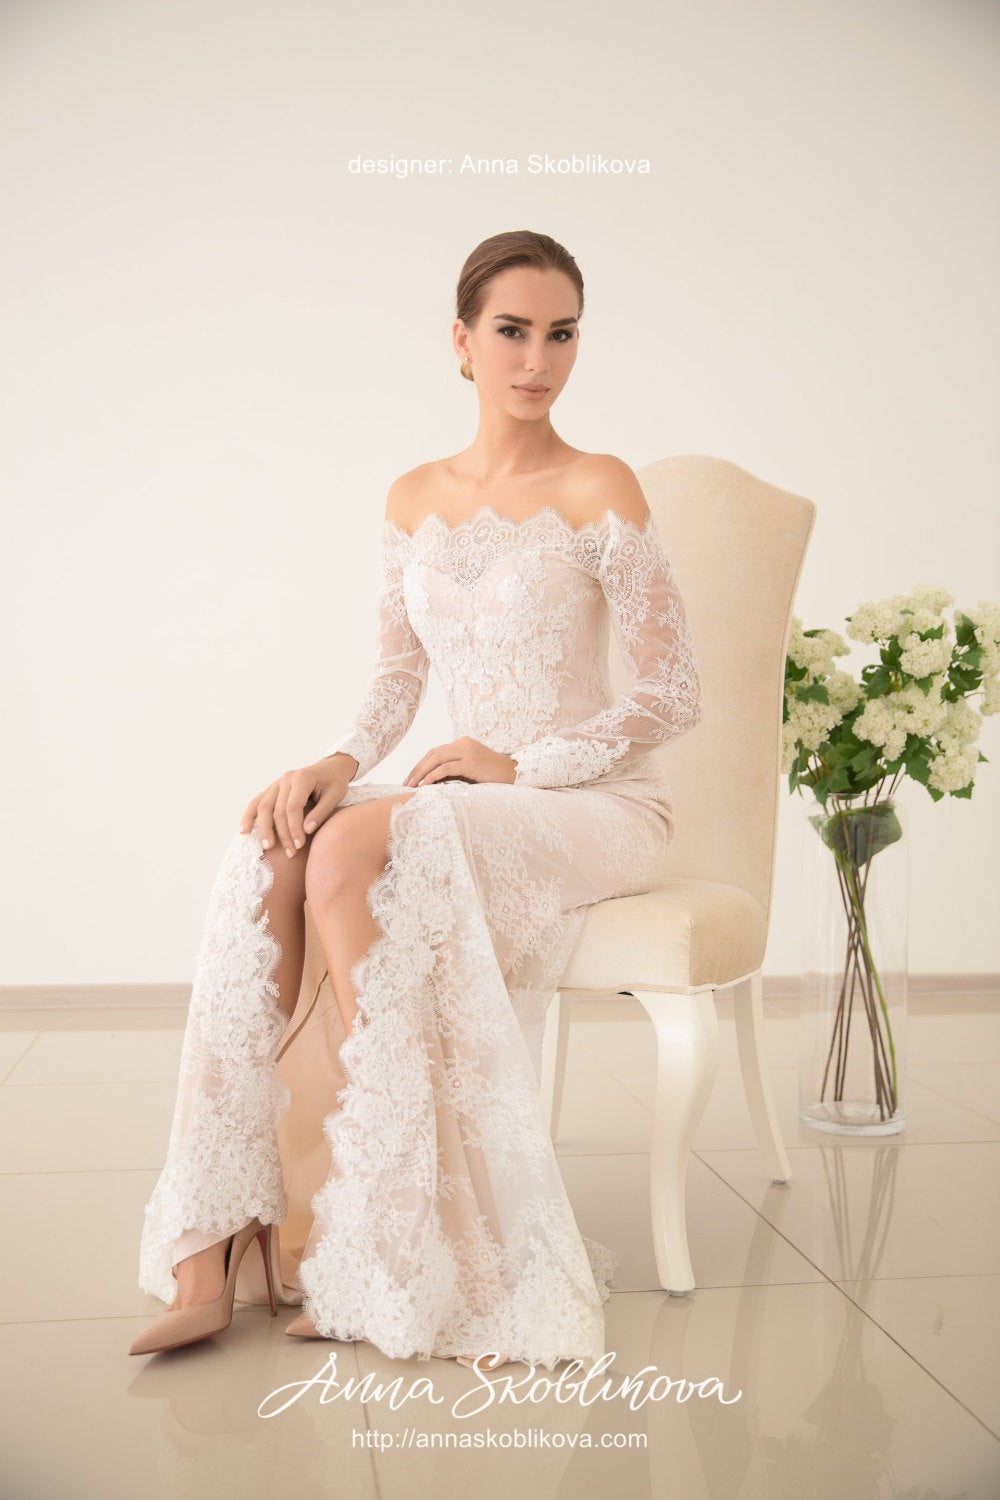 Blush Wedding Dress - Hand Embroidered, Royal Dress, Wedding Gown, Ball Bridal Gown 0046